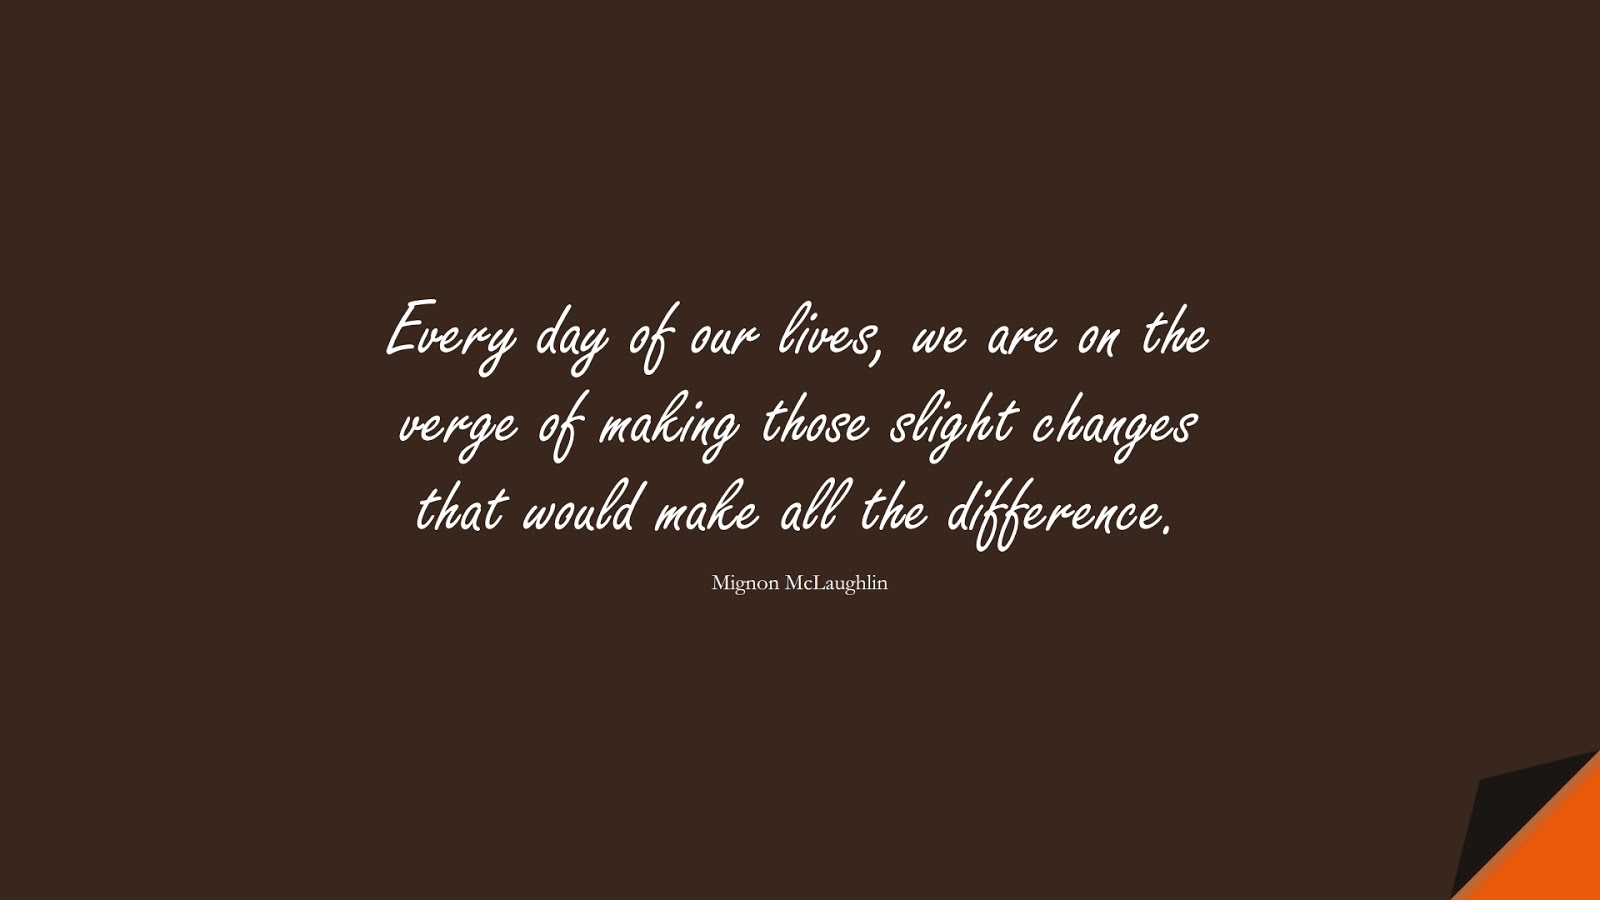 Every day of our lives, we are on the verge of making those slight changes that would make all the difference. (Mignon McLaughlin);  #ChangeQuotes